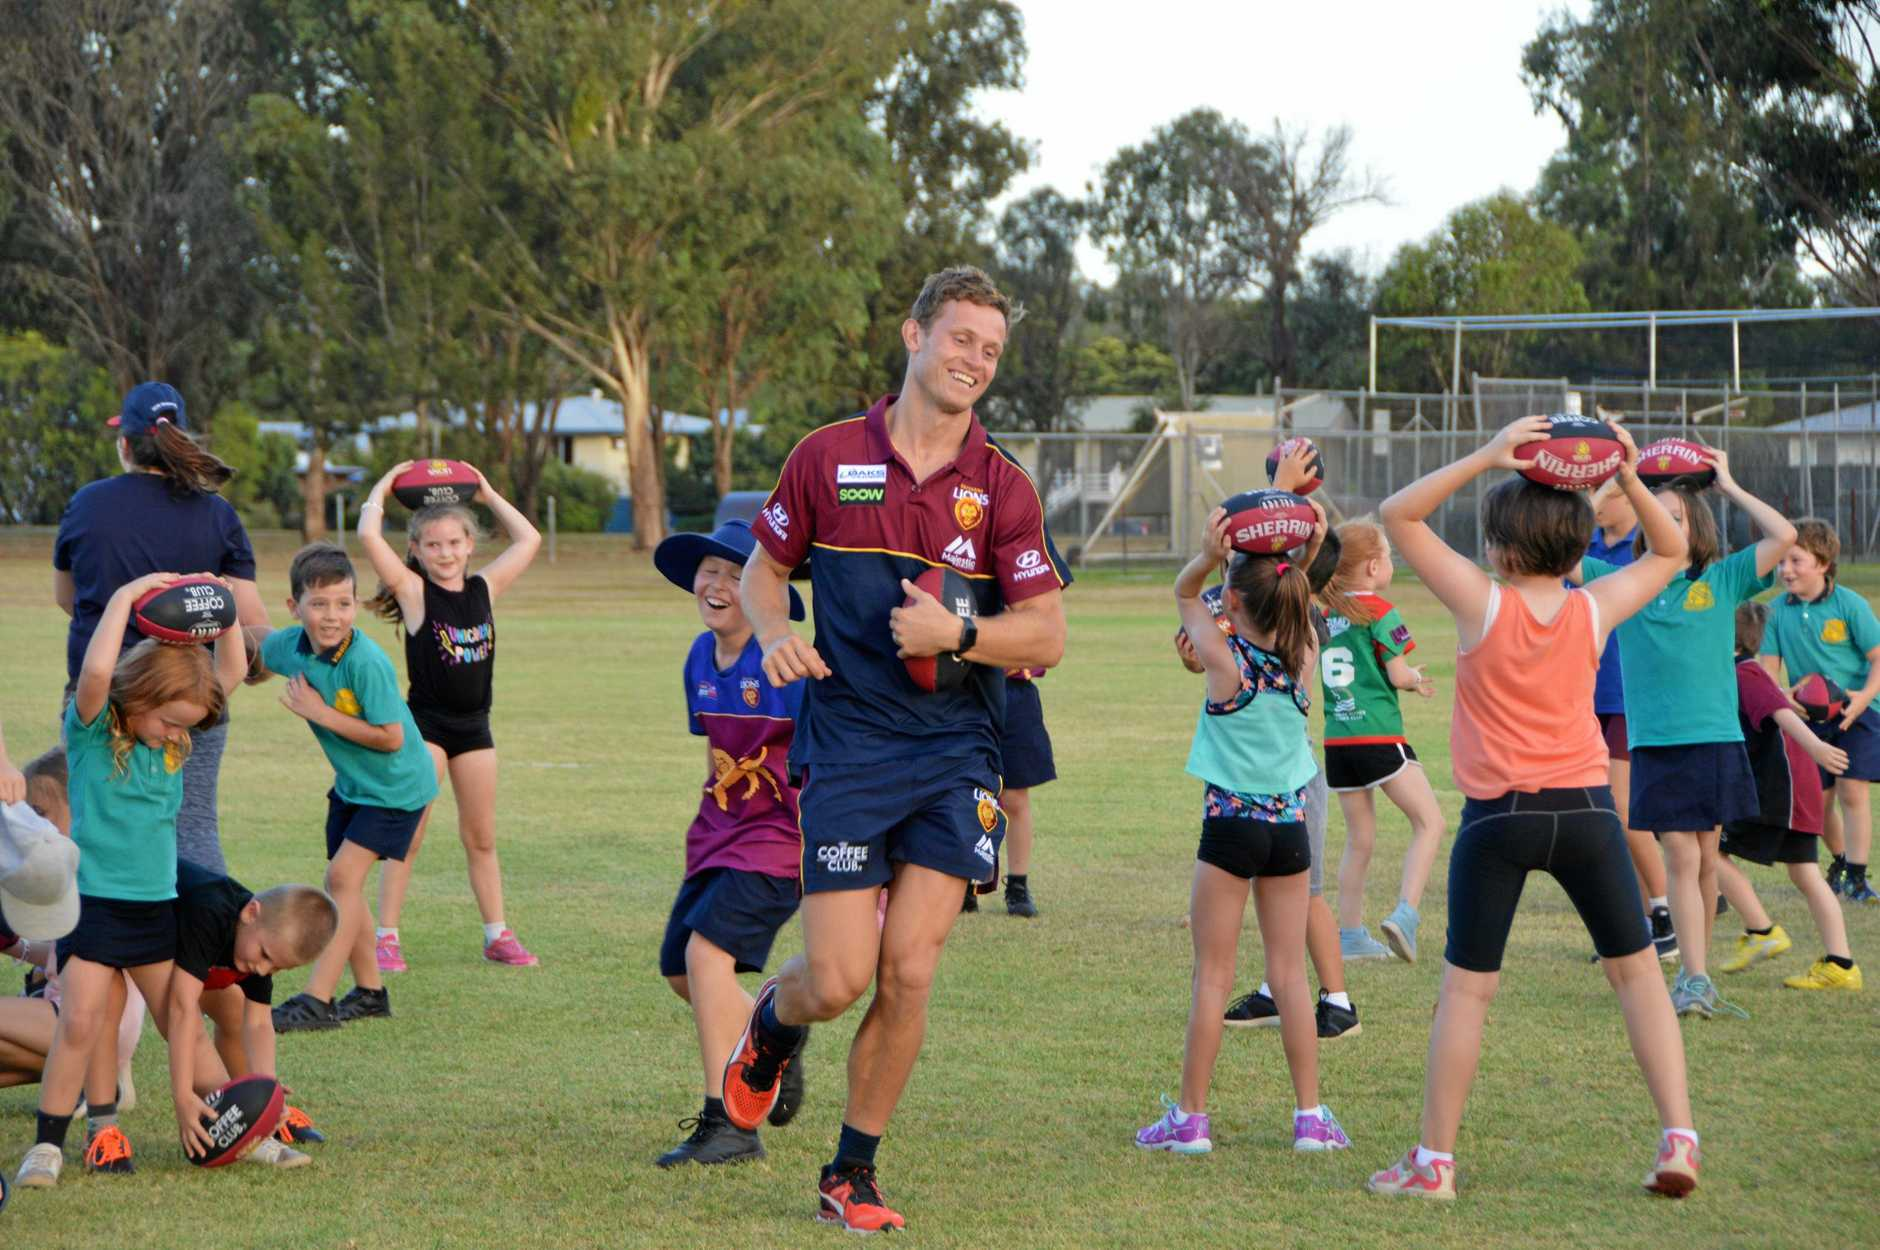 Brisbane Lions players Ryan Lester having fun playing stuck in the mud in Kingaroy.